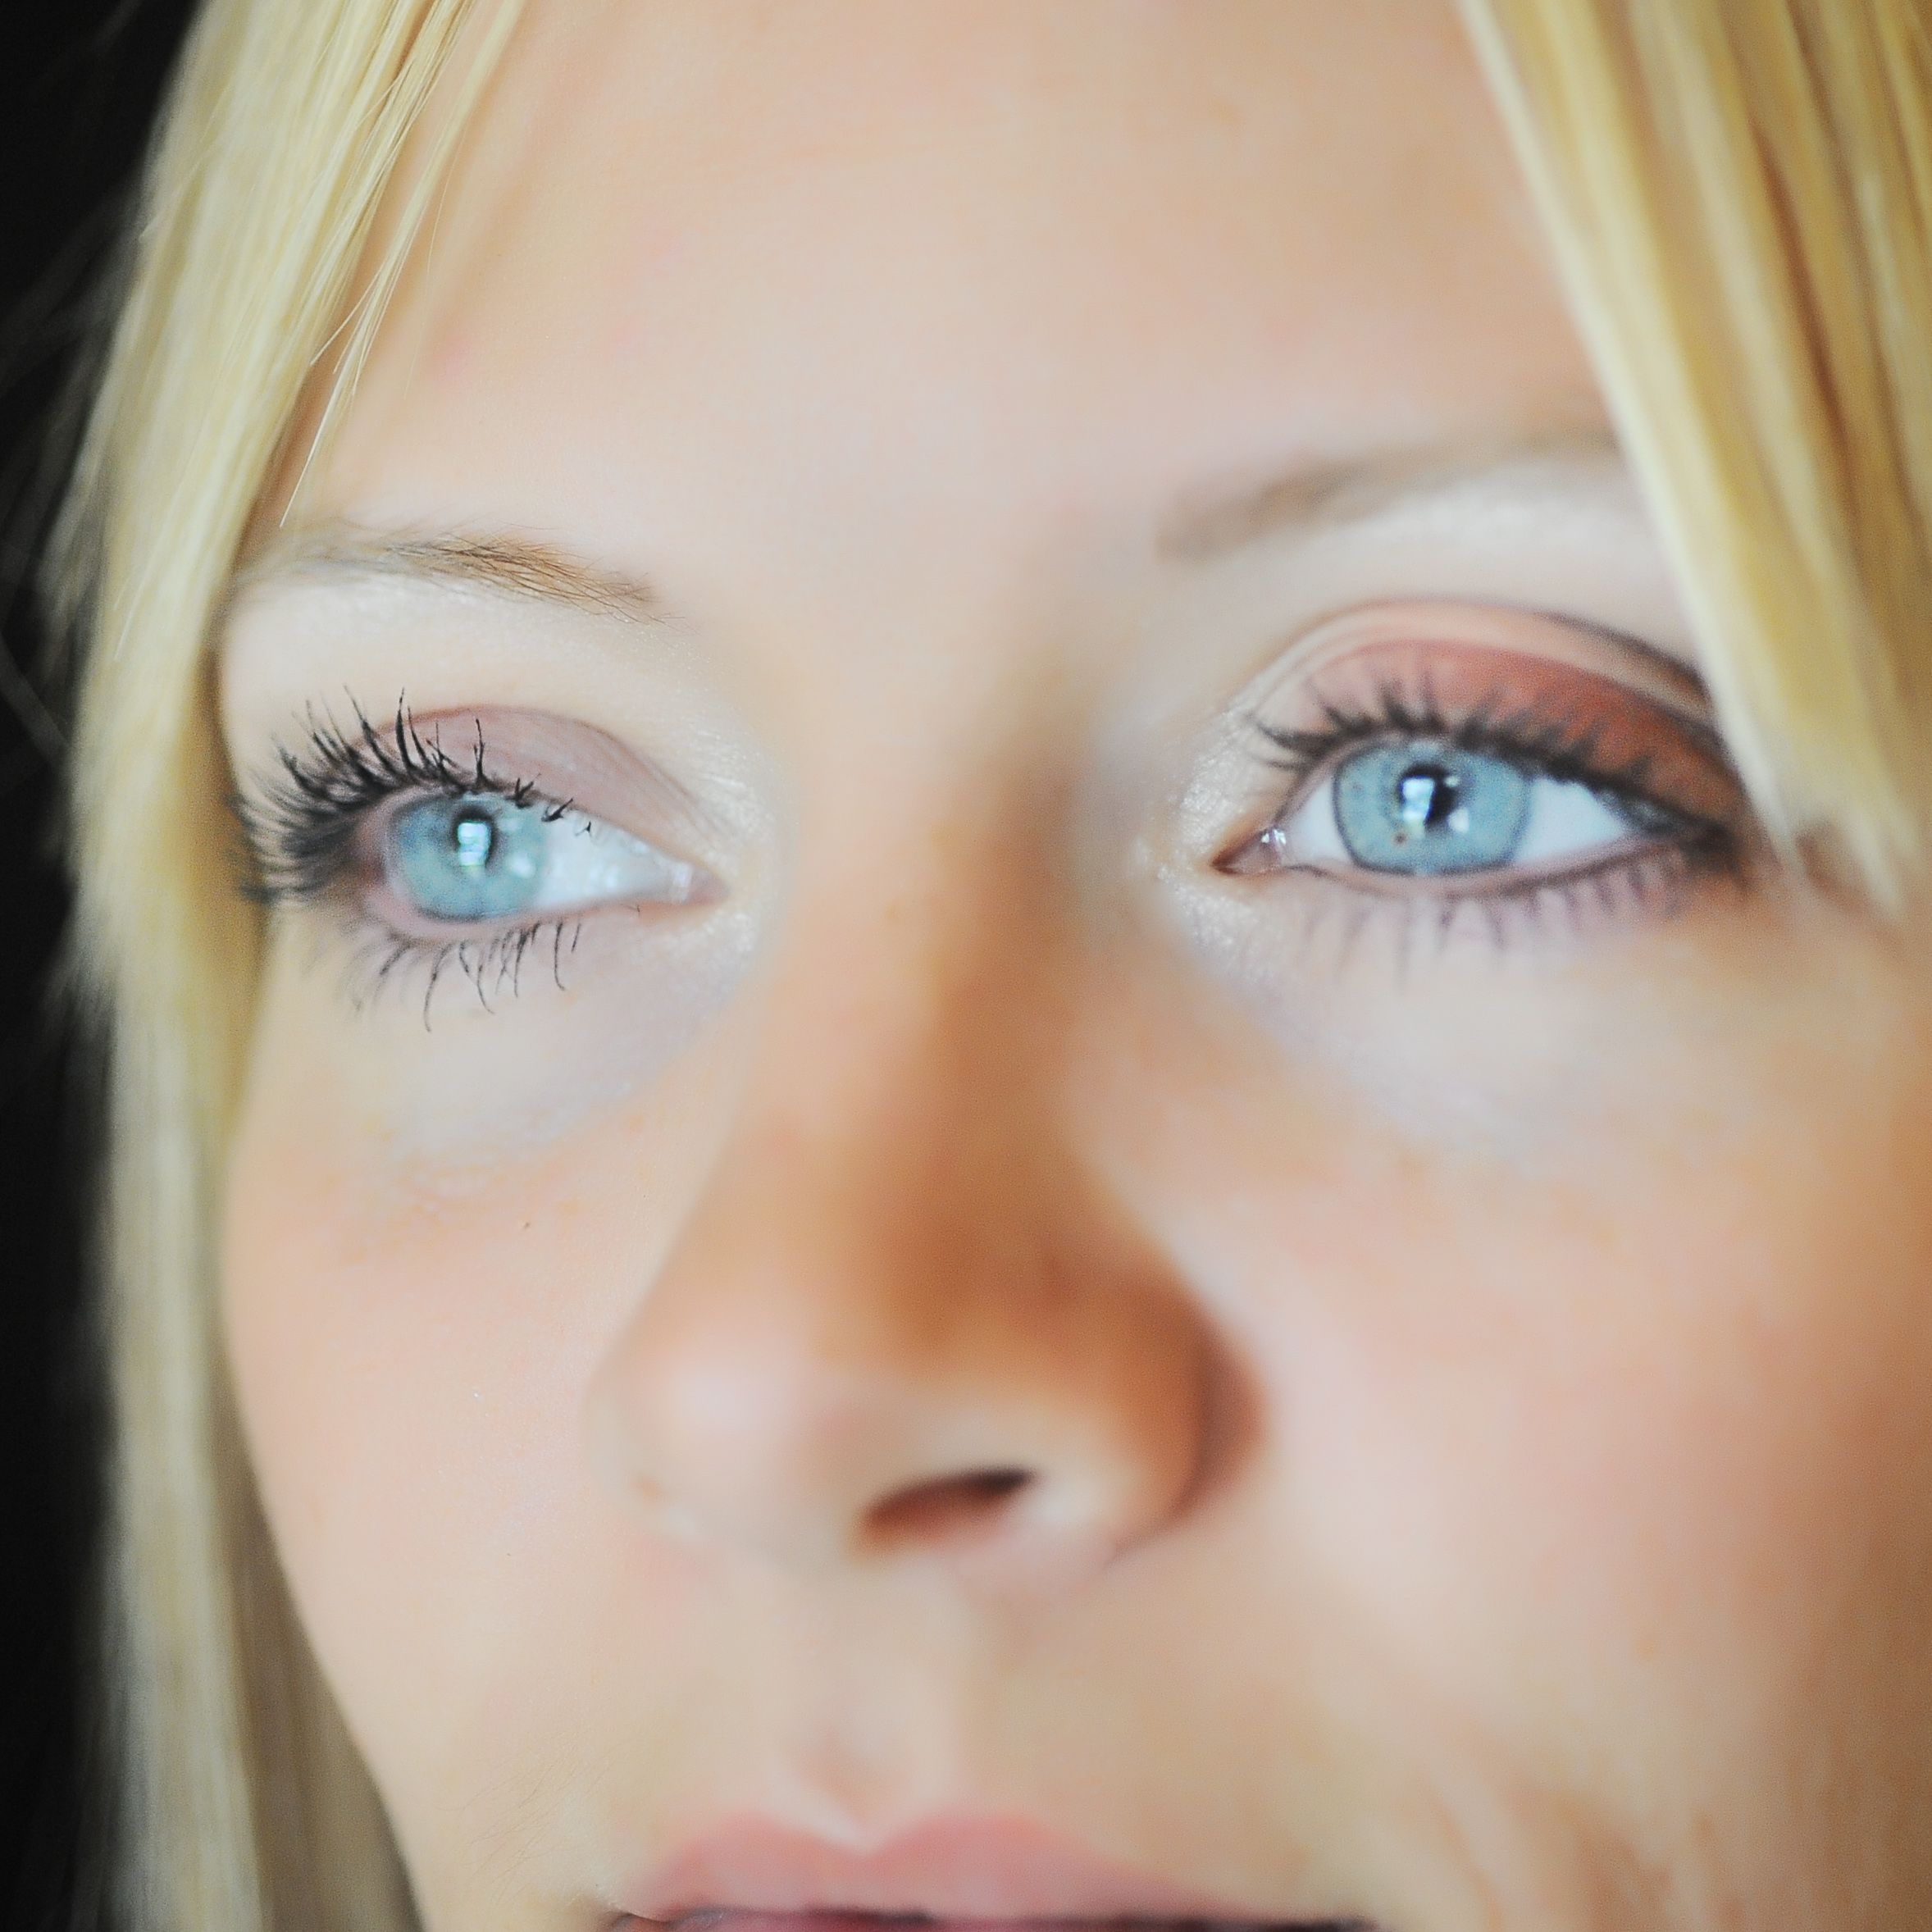 Don't get permanent makeup in Utah until you.. (With